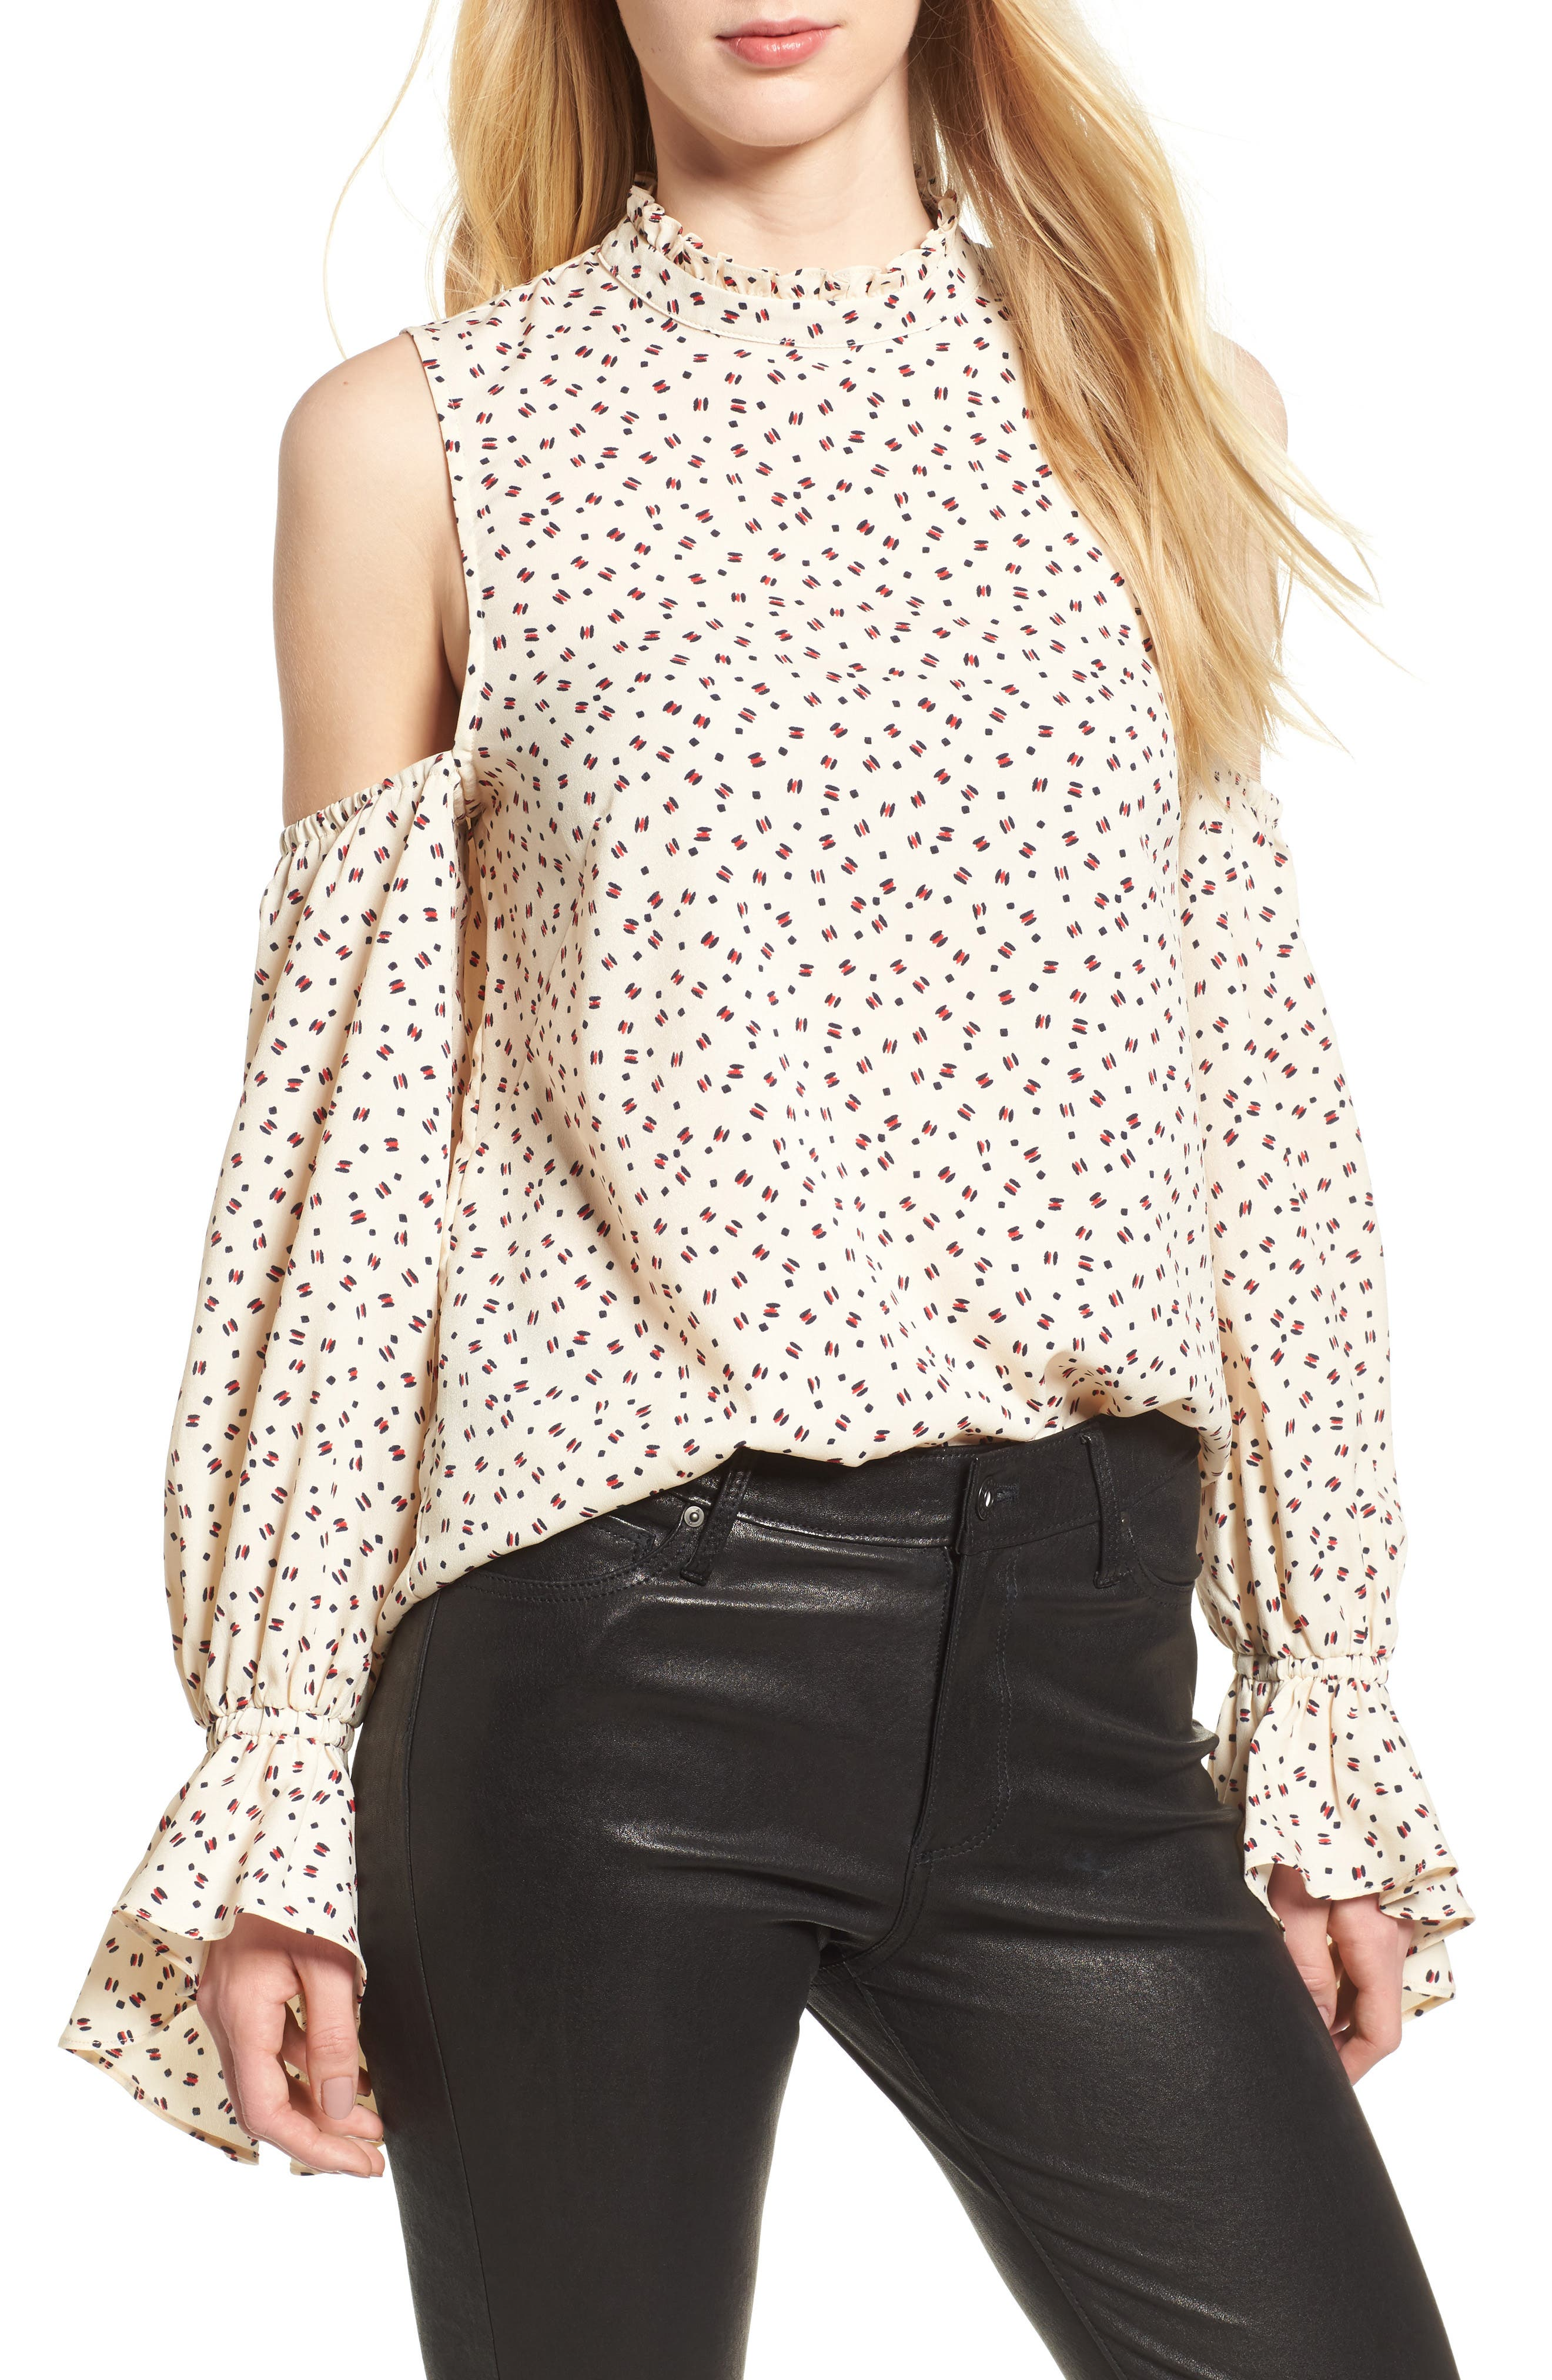 Bishop + Young Cold Shoulder Top,                             Main thumbnail 1, color,                             White Print